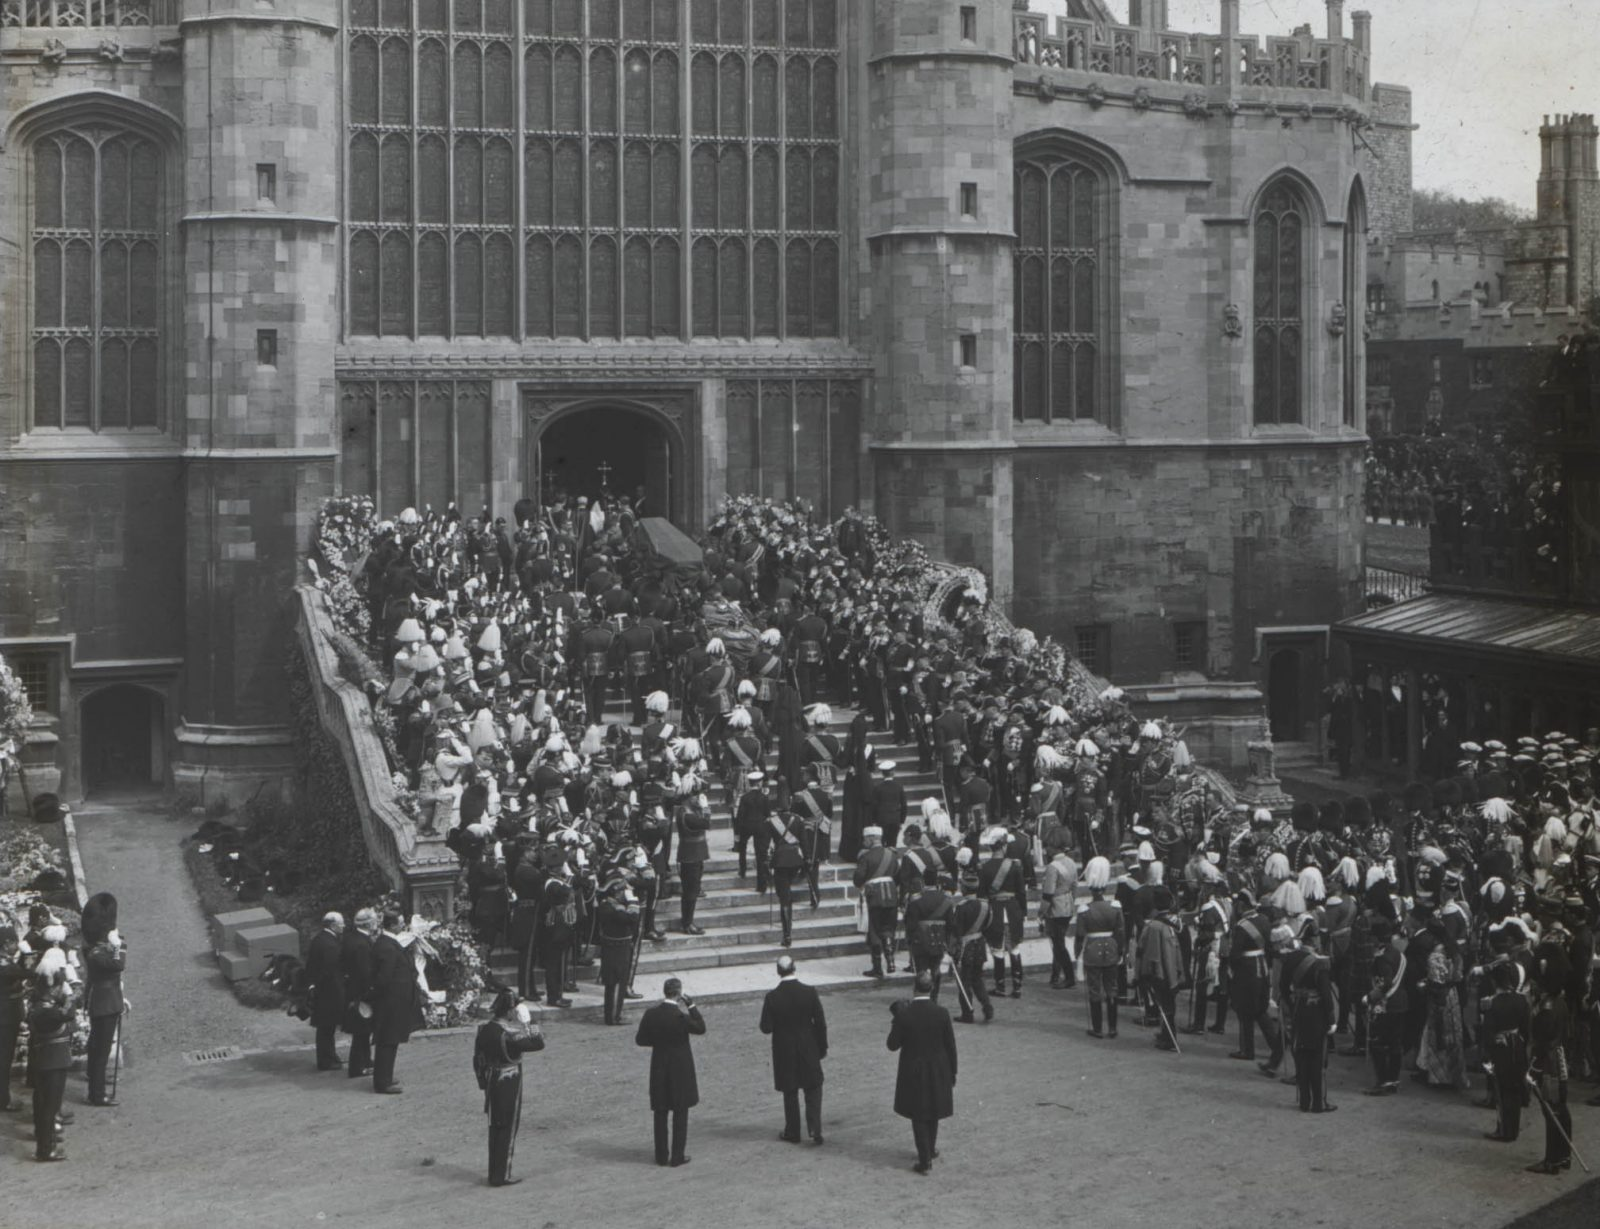 The funeral procession on the West Steps